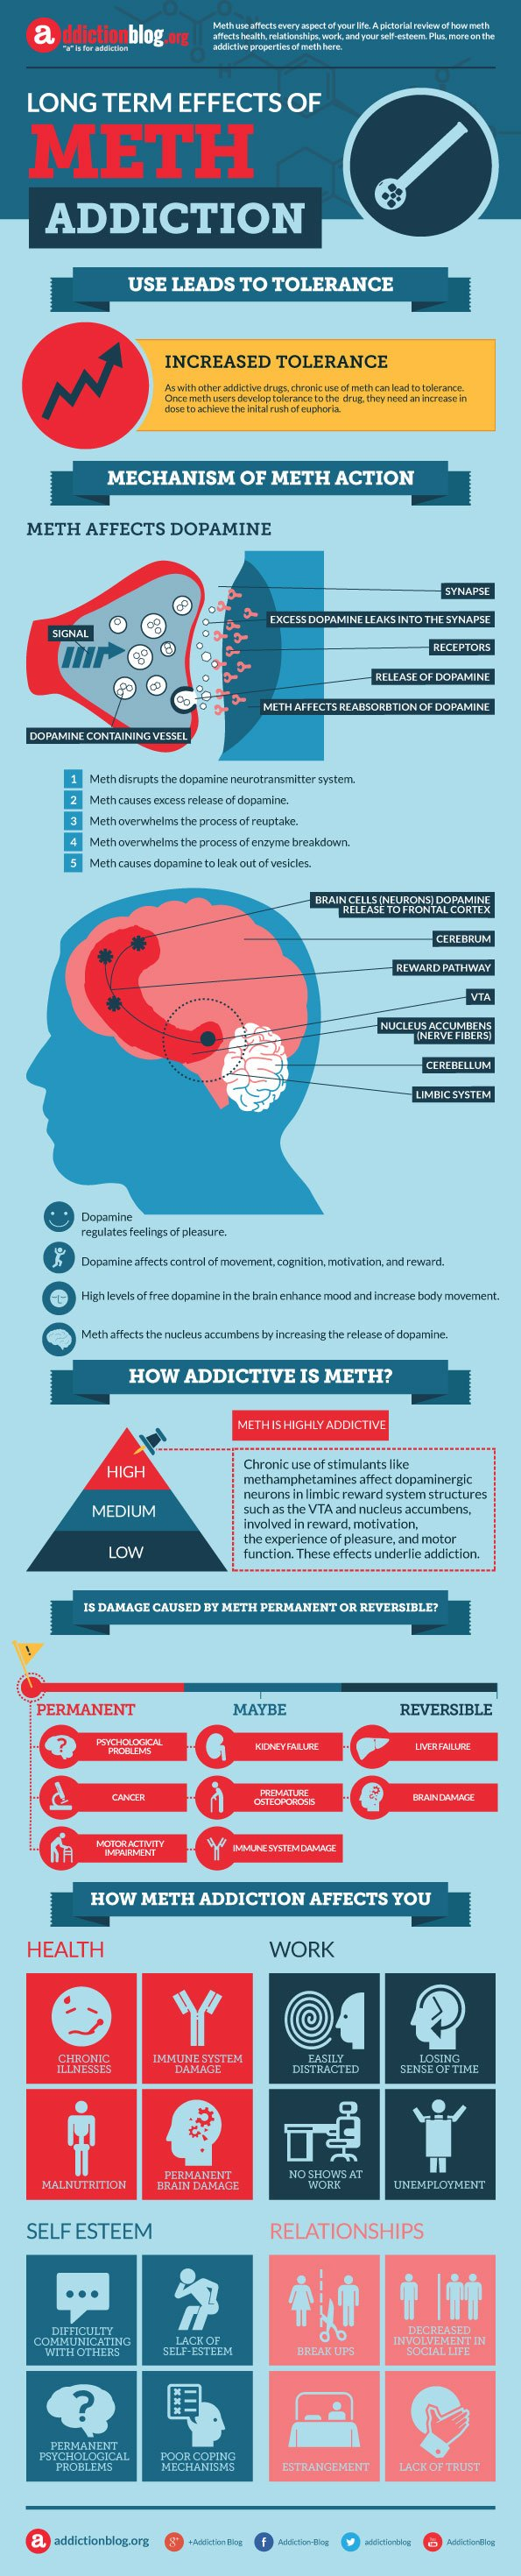 Meth Induced Psychosis - Withdrawal, Symptoms, and Treatment